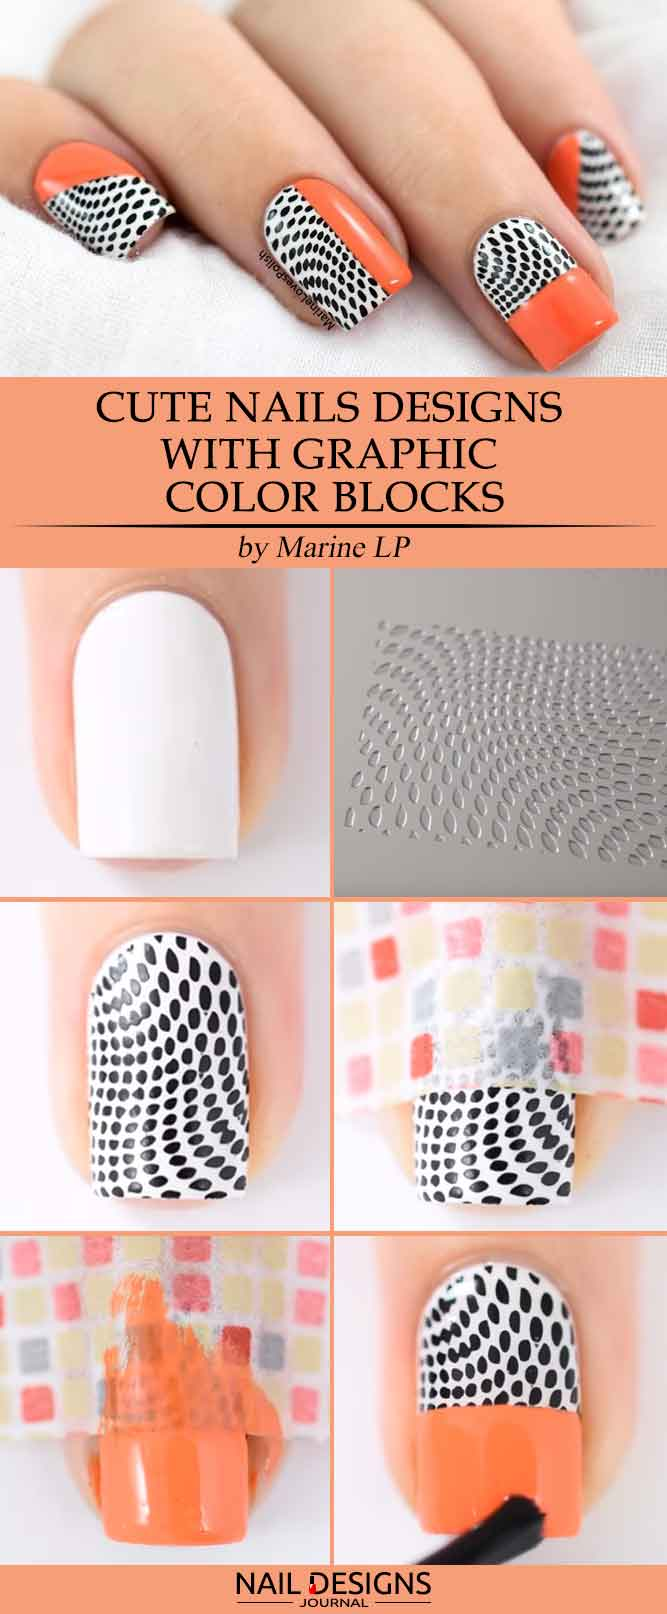 Cute Nails Designs with Graphic Color Blocks